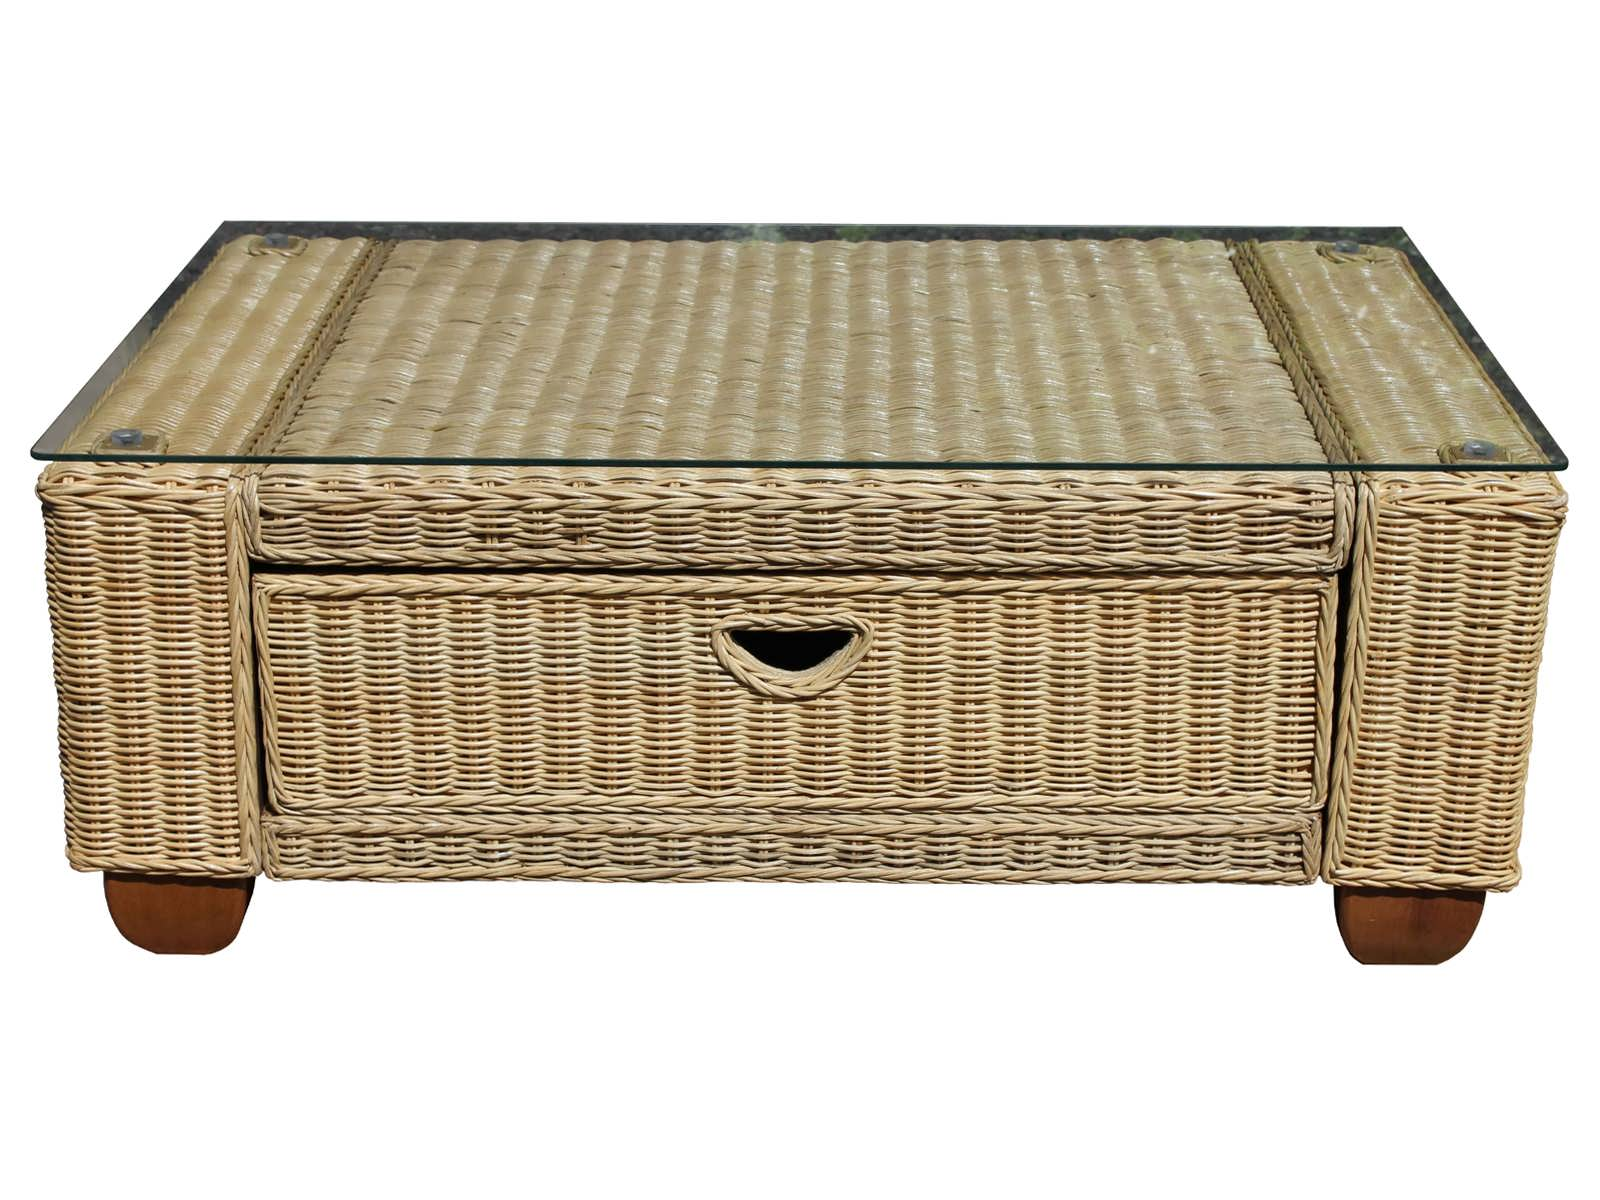 decoration outdoor wicker coffee table small cane side tables large ott resin brownrattan patio brown full size pottery barn furniture home office nesting sofa round dining room